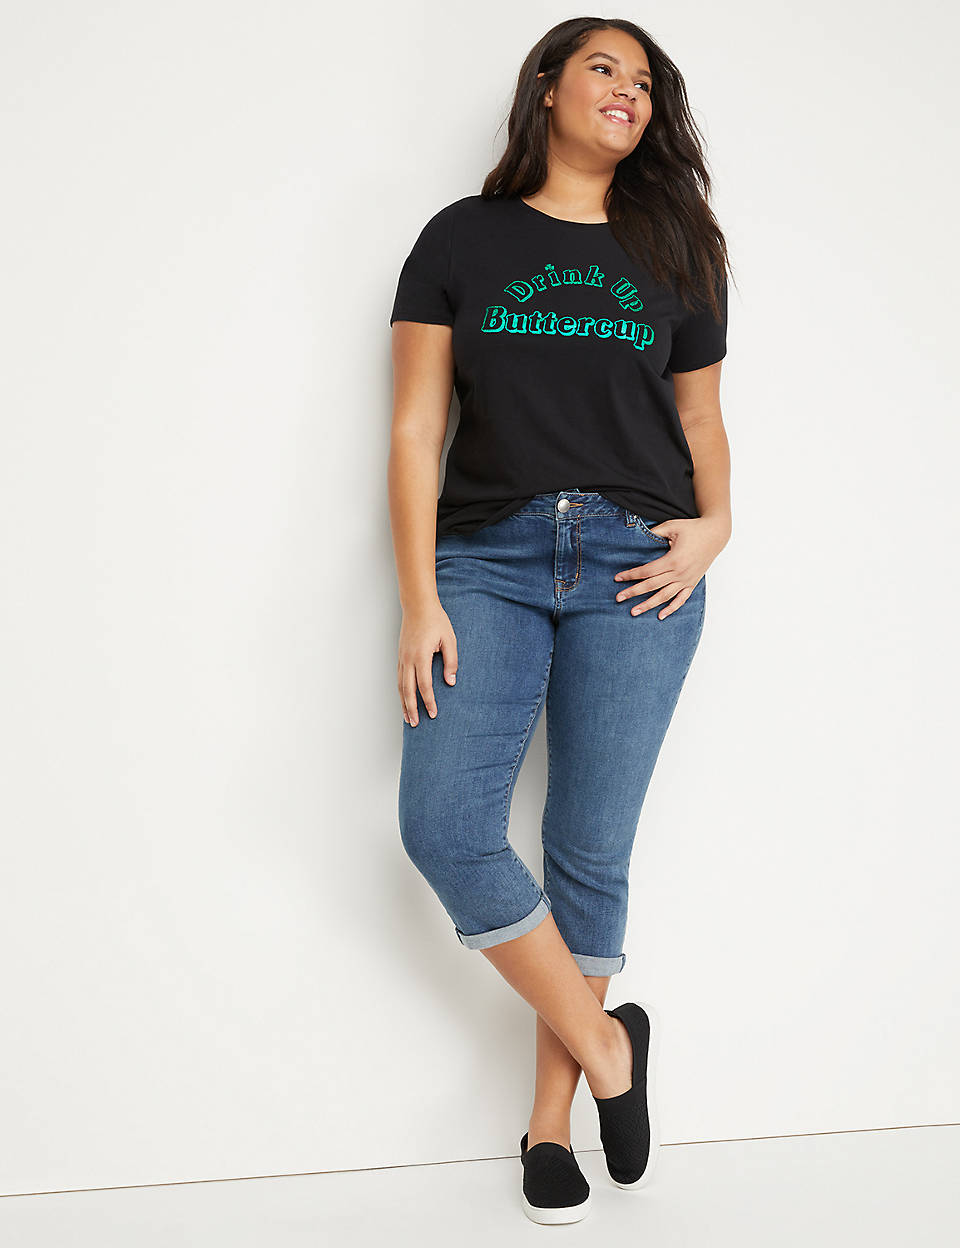 a2d178698ee Drink Up Buttercup Graphic Tee